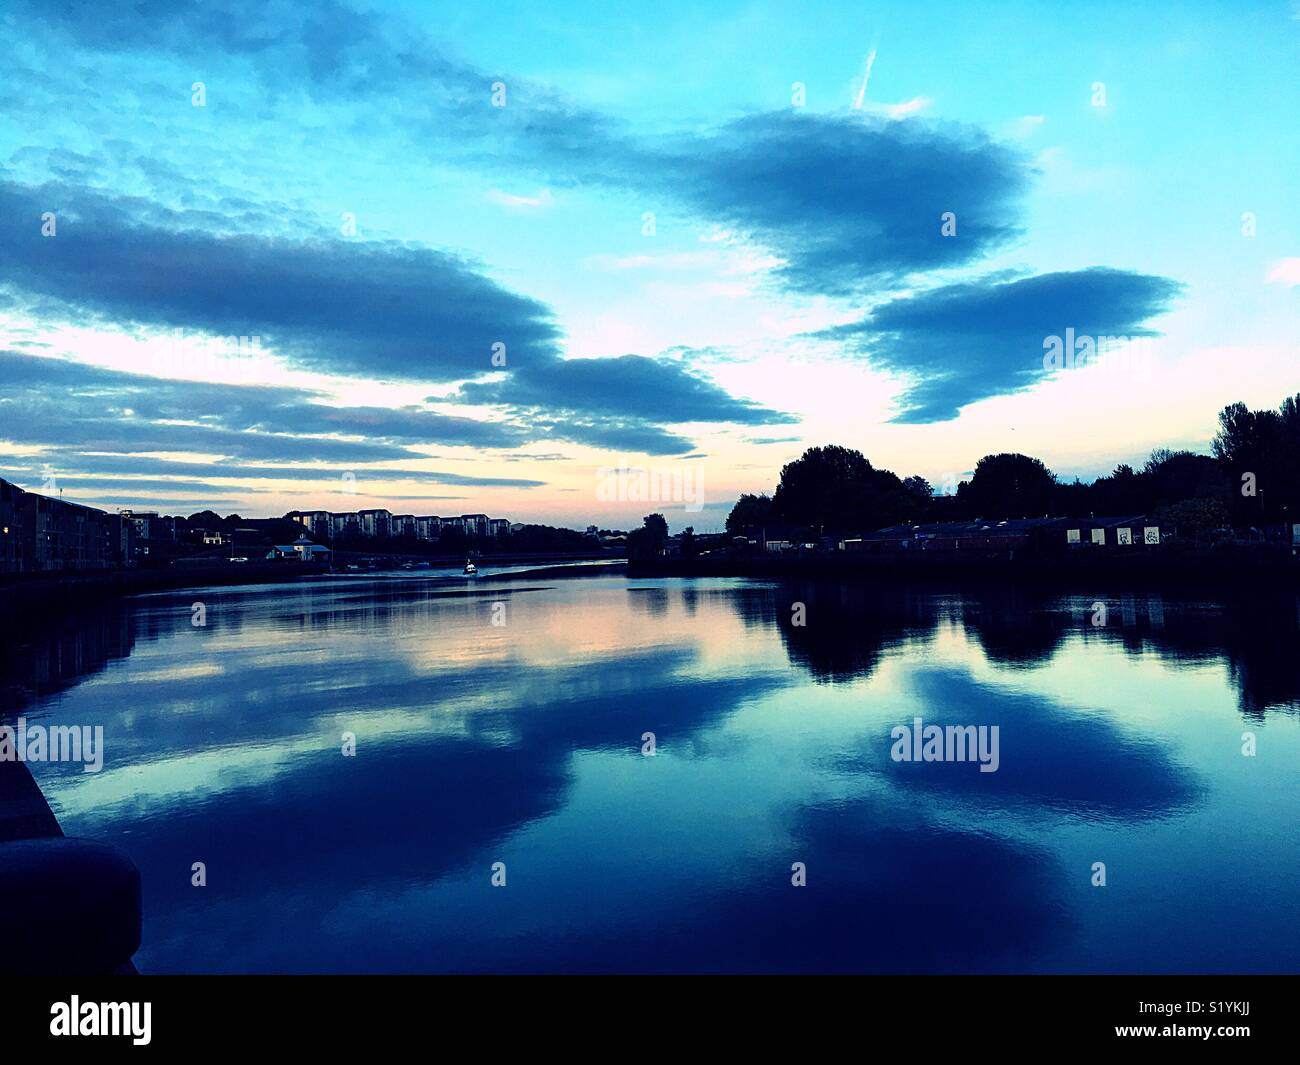 Water reflections - Stock Image